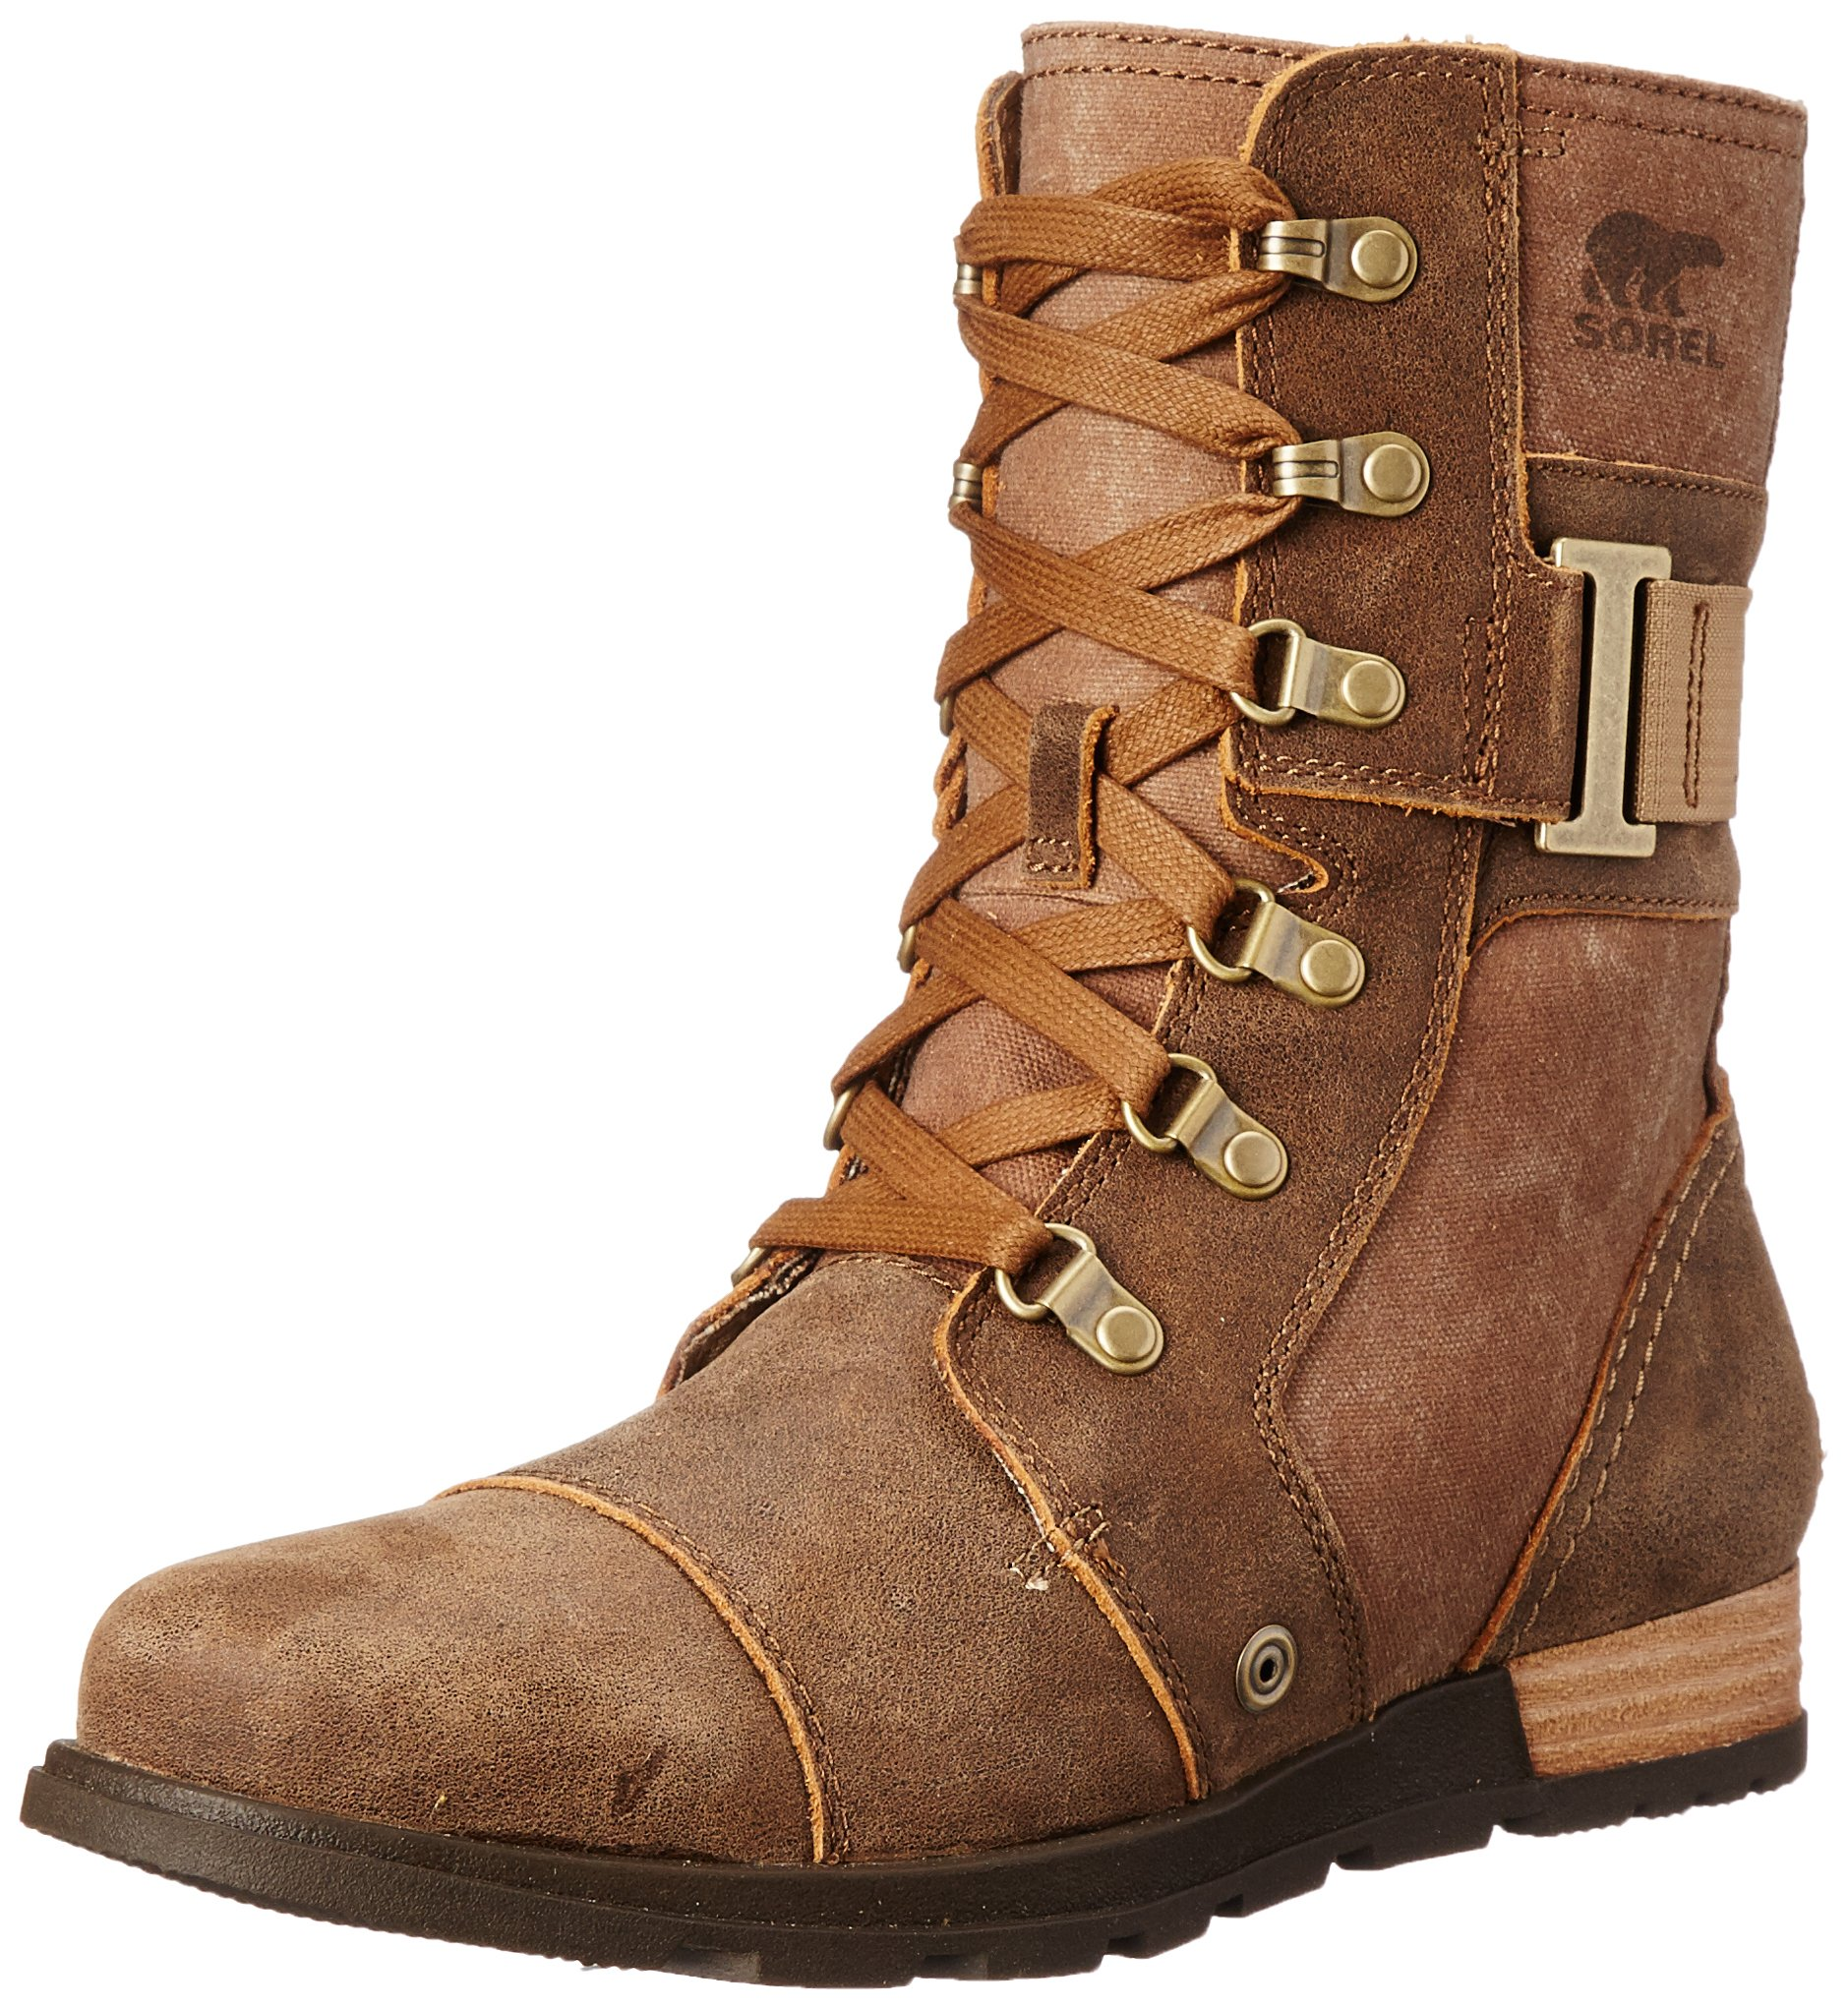 Sorel Women's Sorel Major Carly Snow Boot, Nutmeg, Flax, 8.5 B US